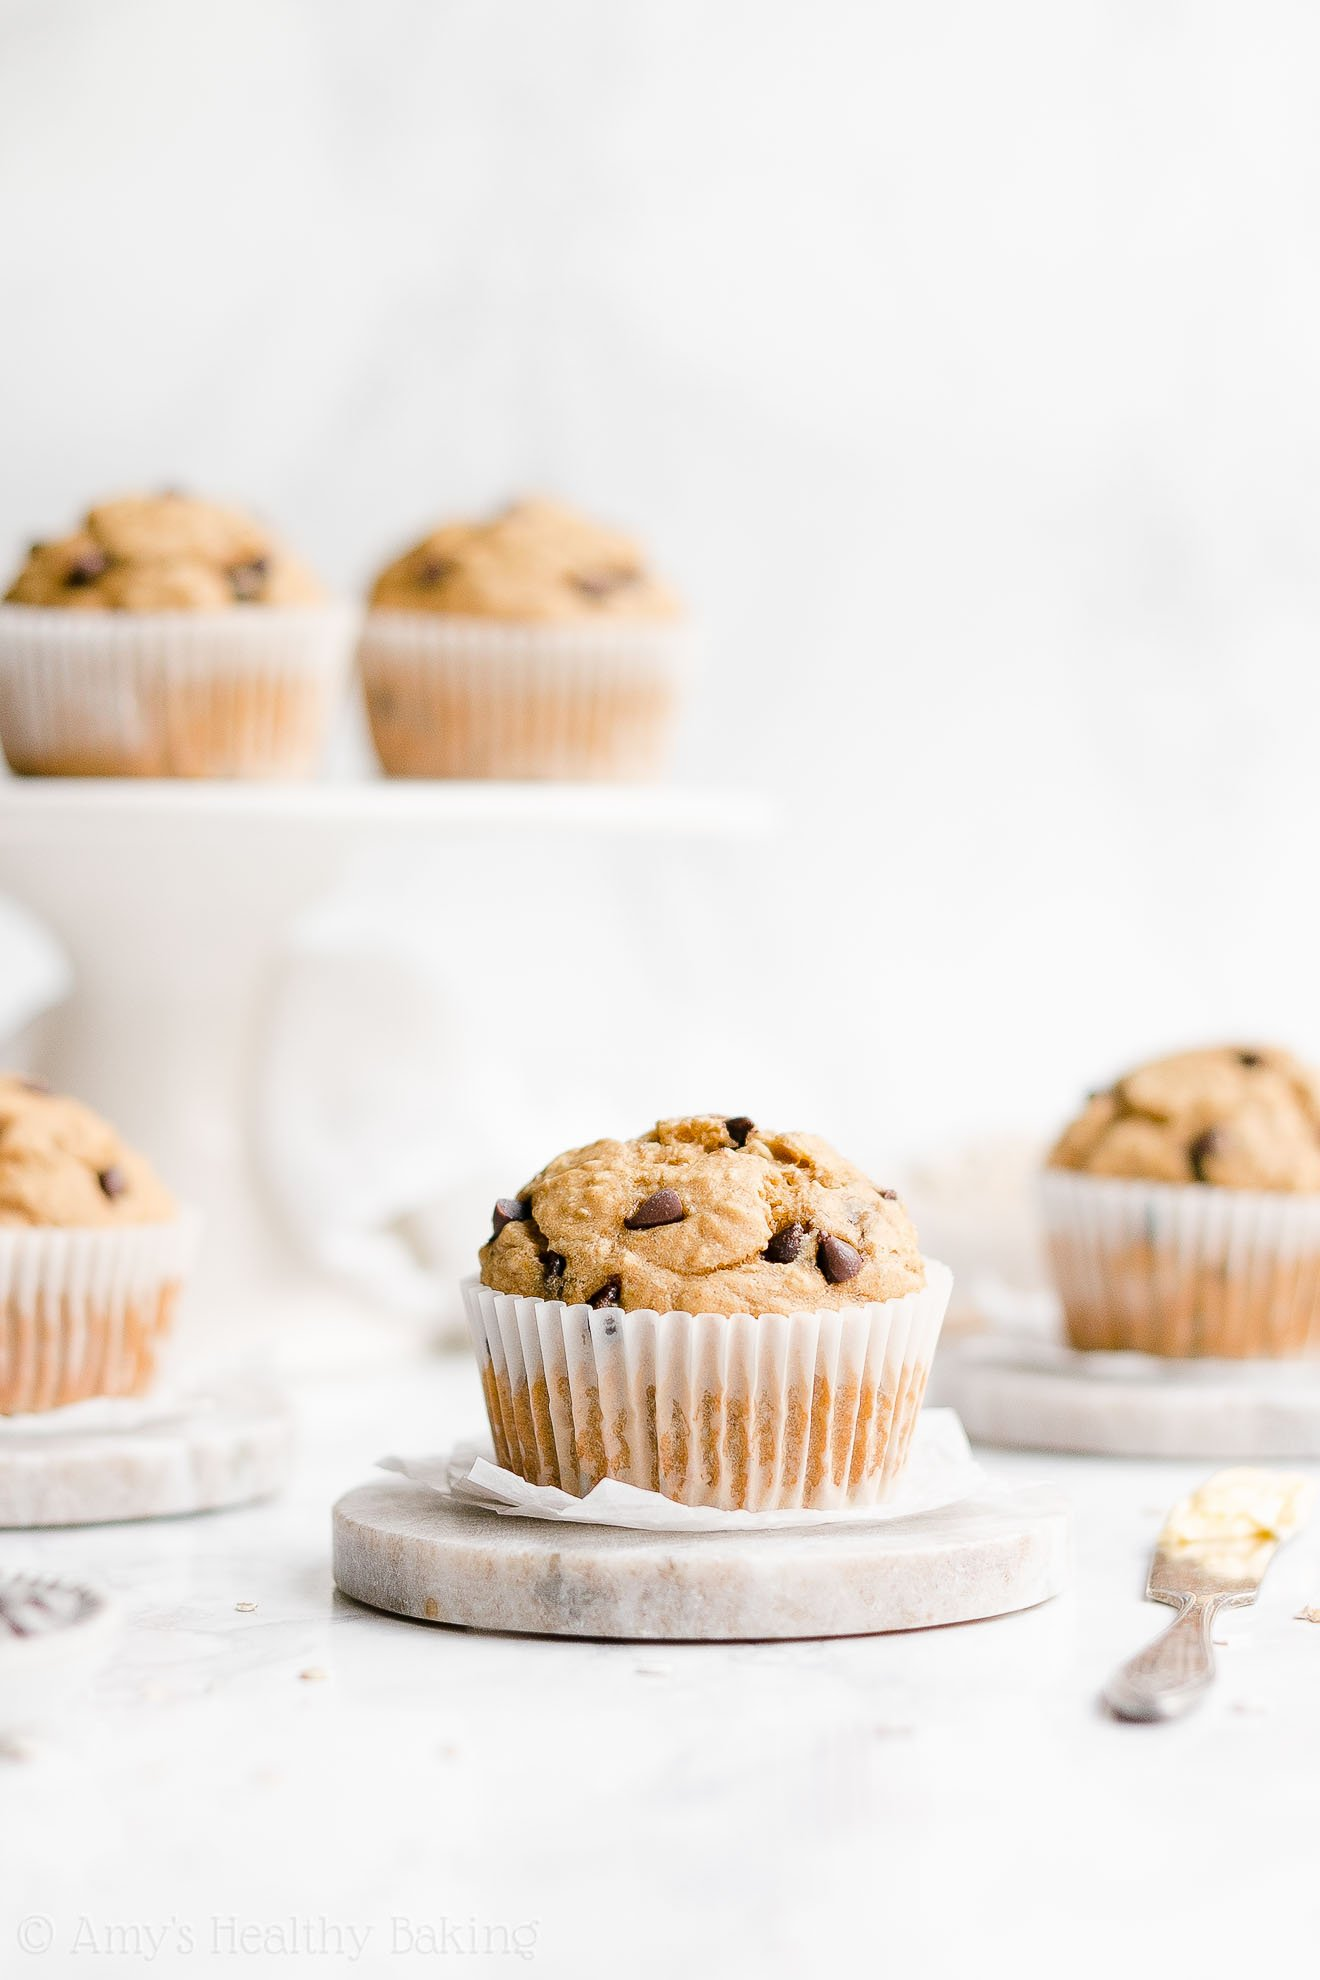 Best Healthy Super Moist Greek Yogurt Banana Chocolate Chip Oatmeal Muffins